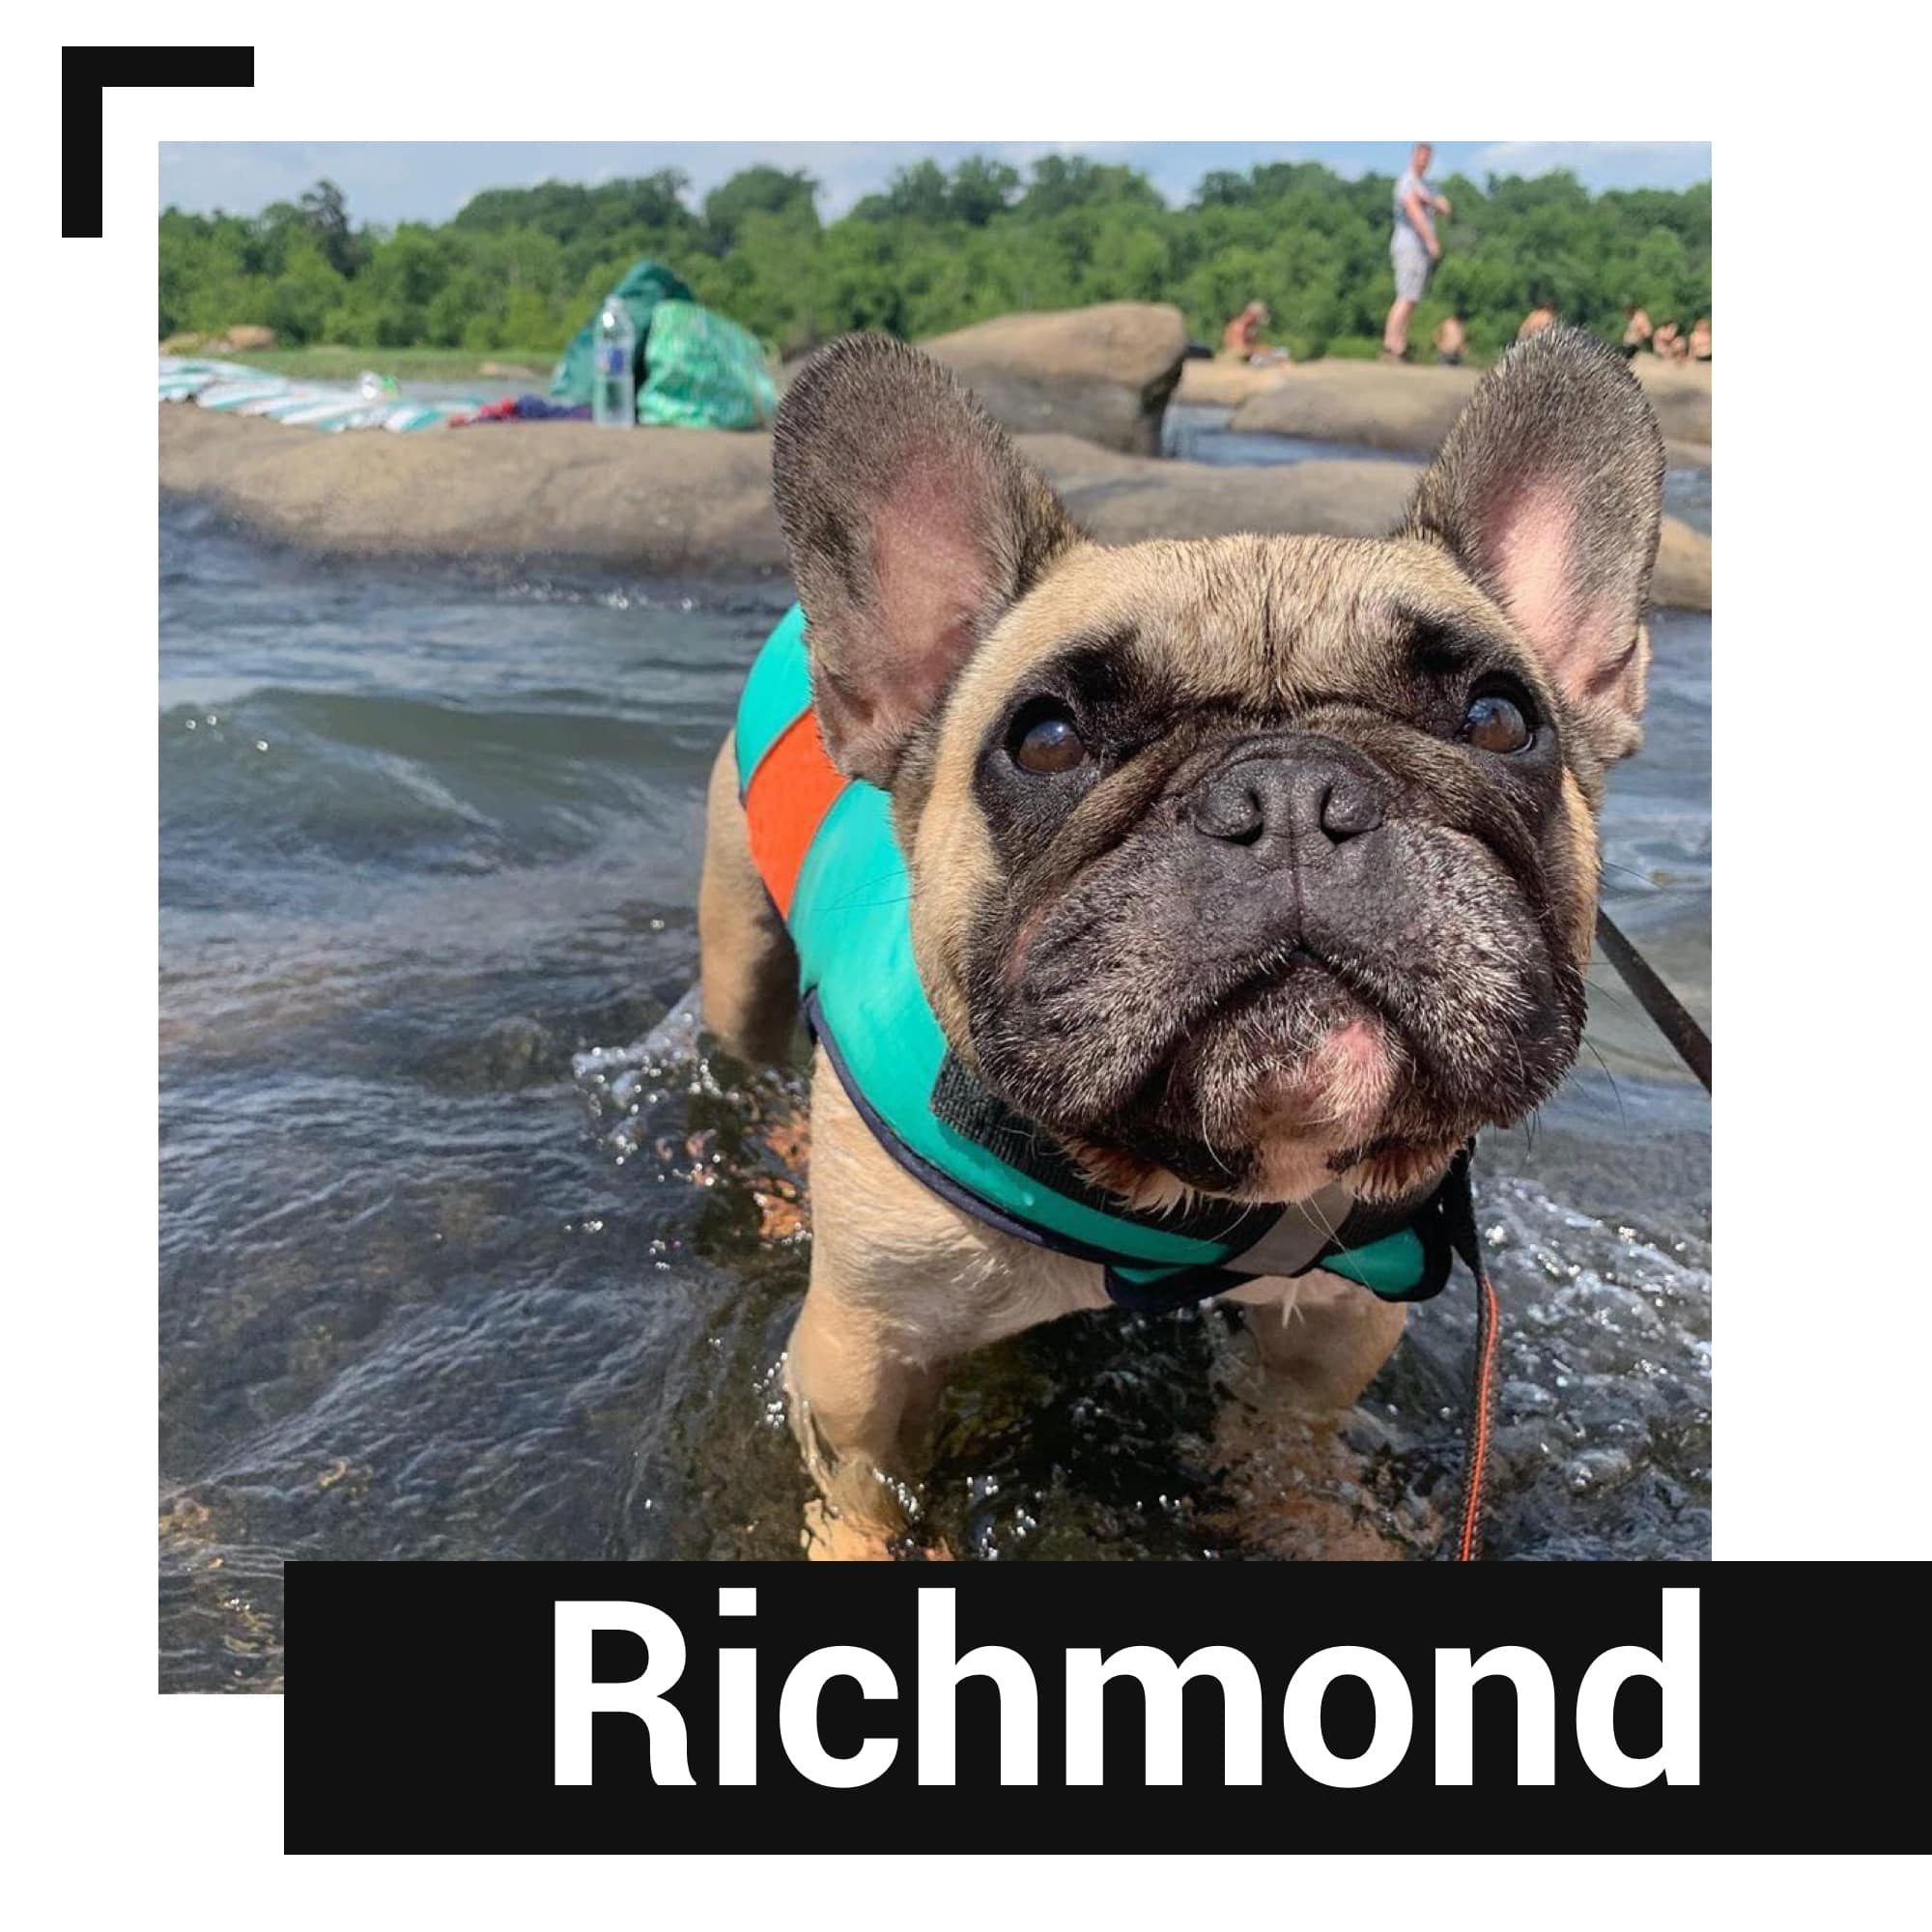 Richmond'daki James River Park System